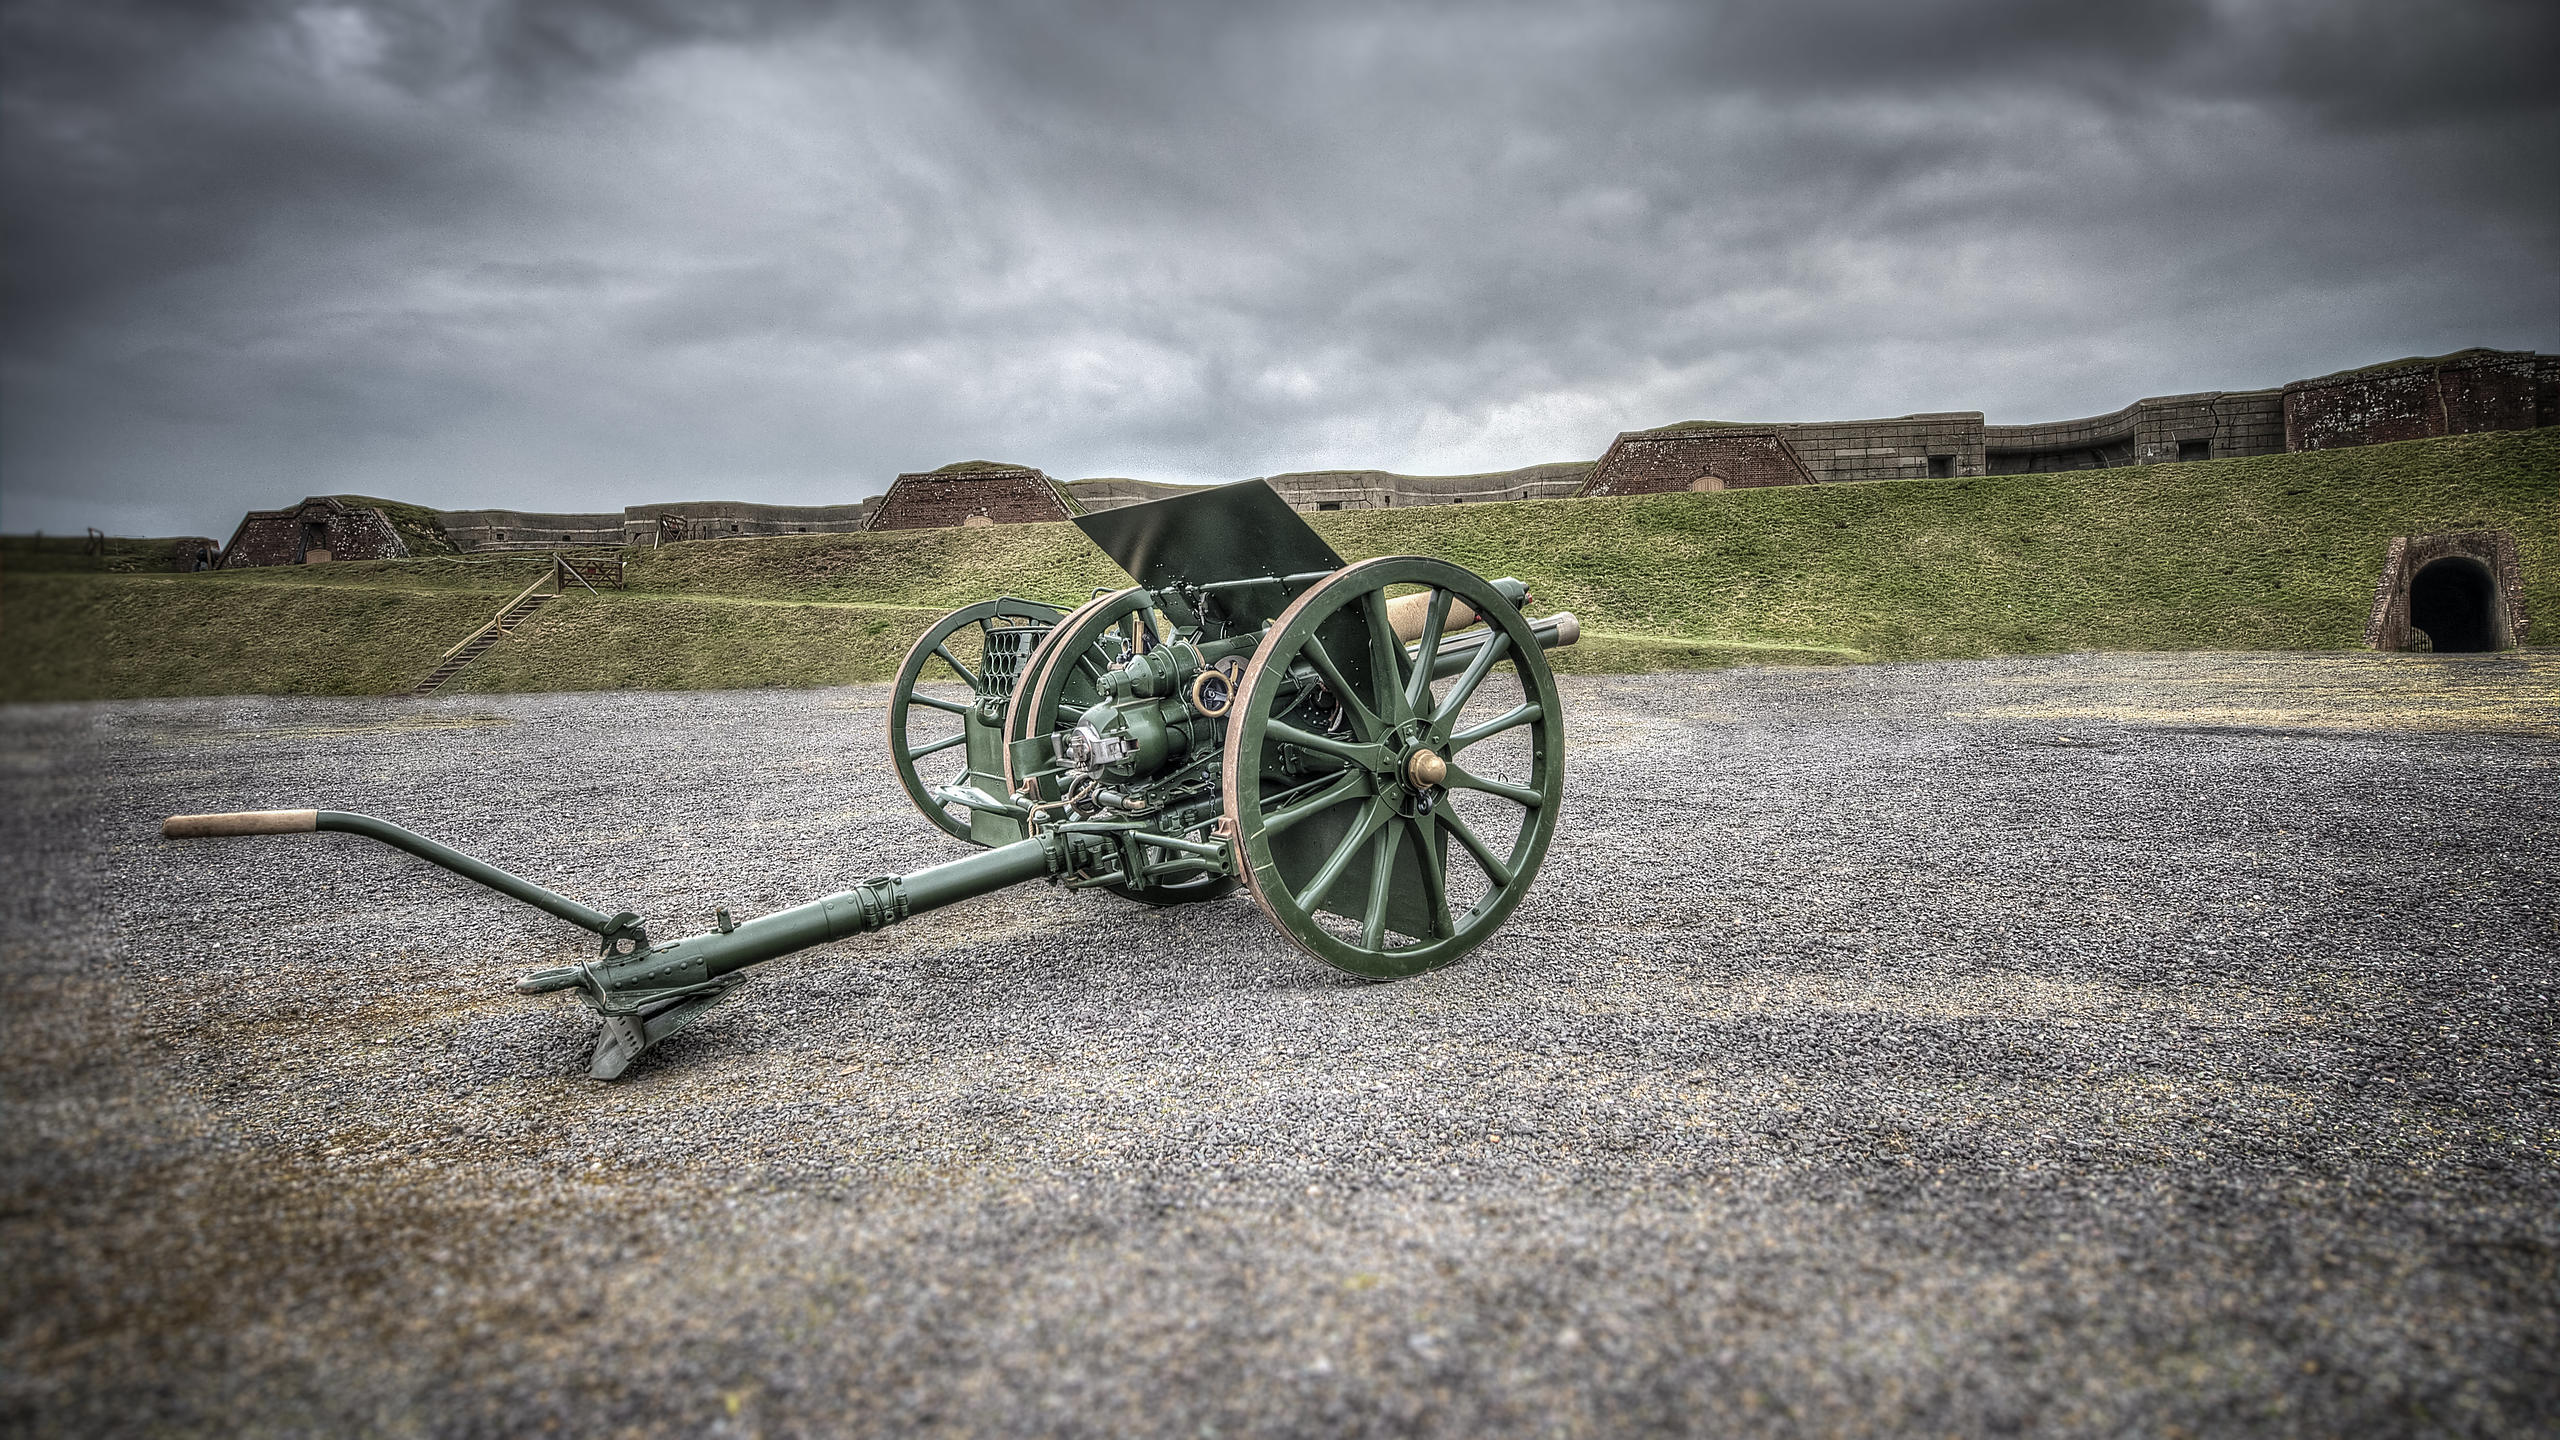 WW1 Cannon at Fort Nelson, Hampshire